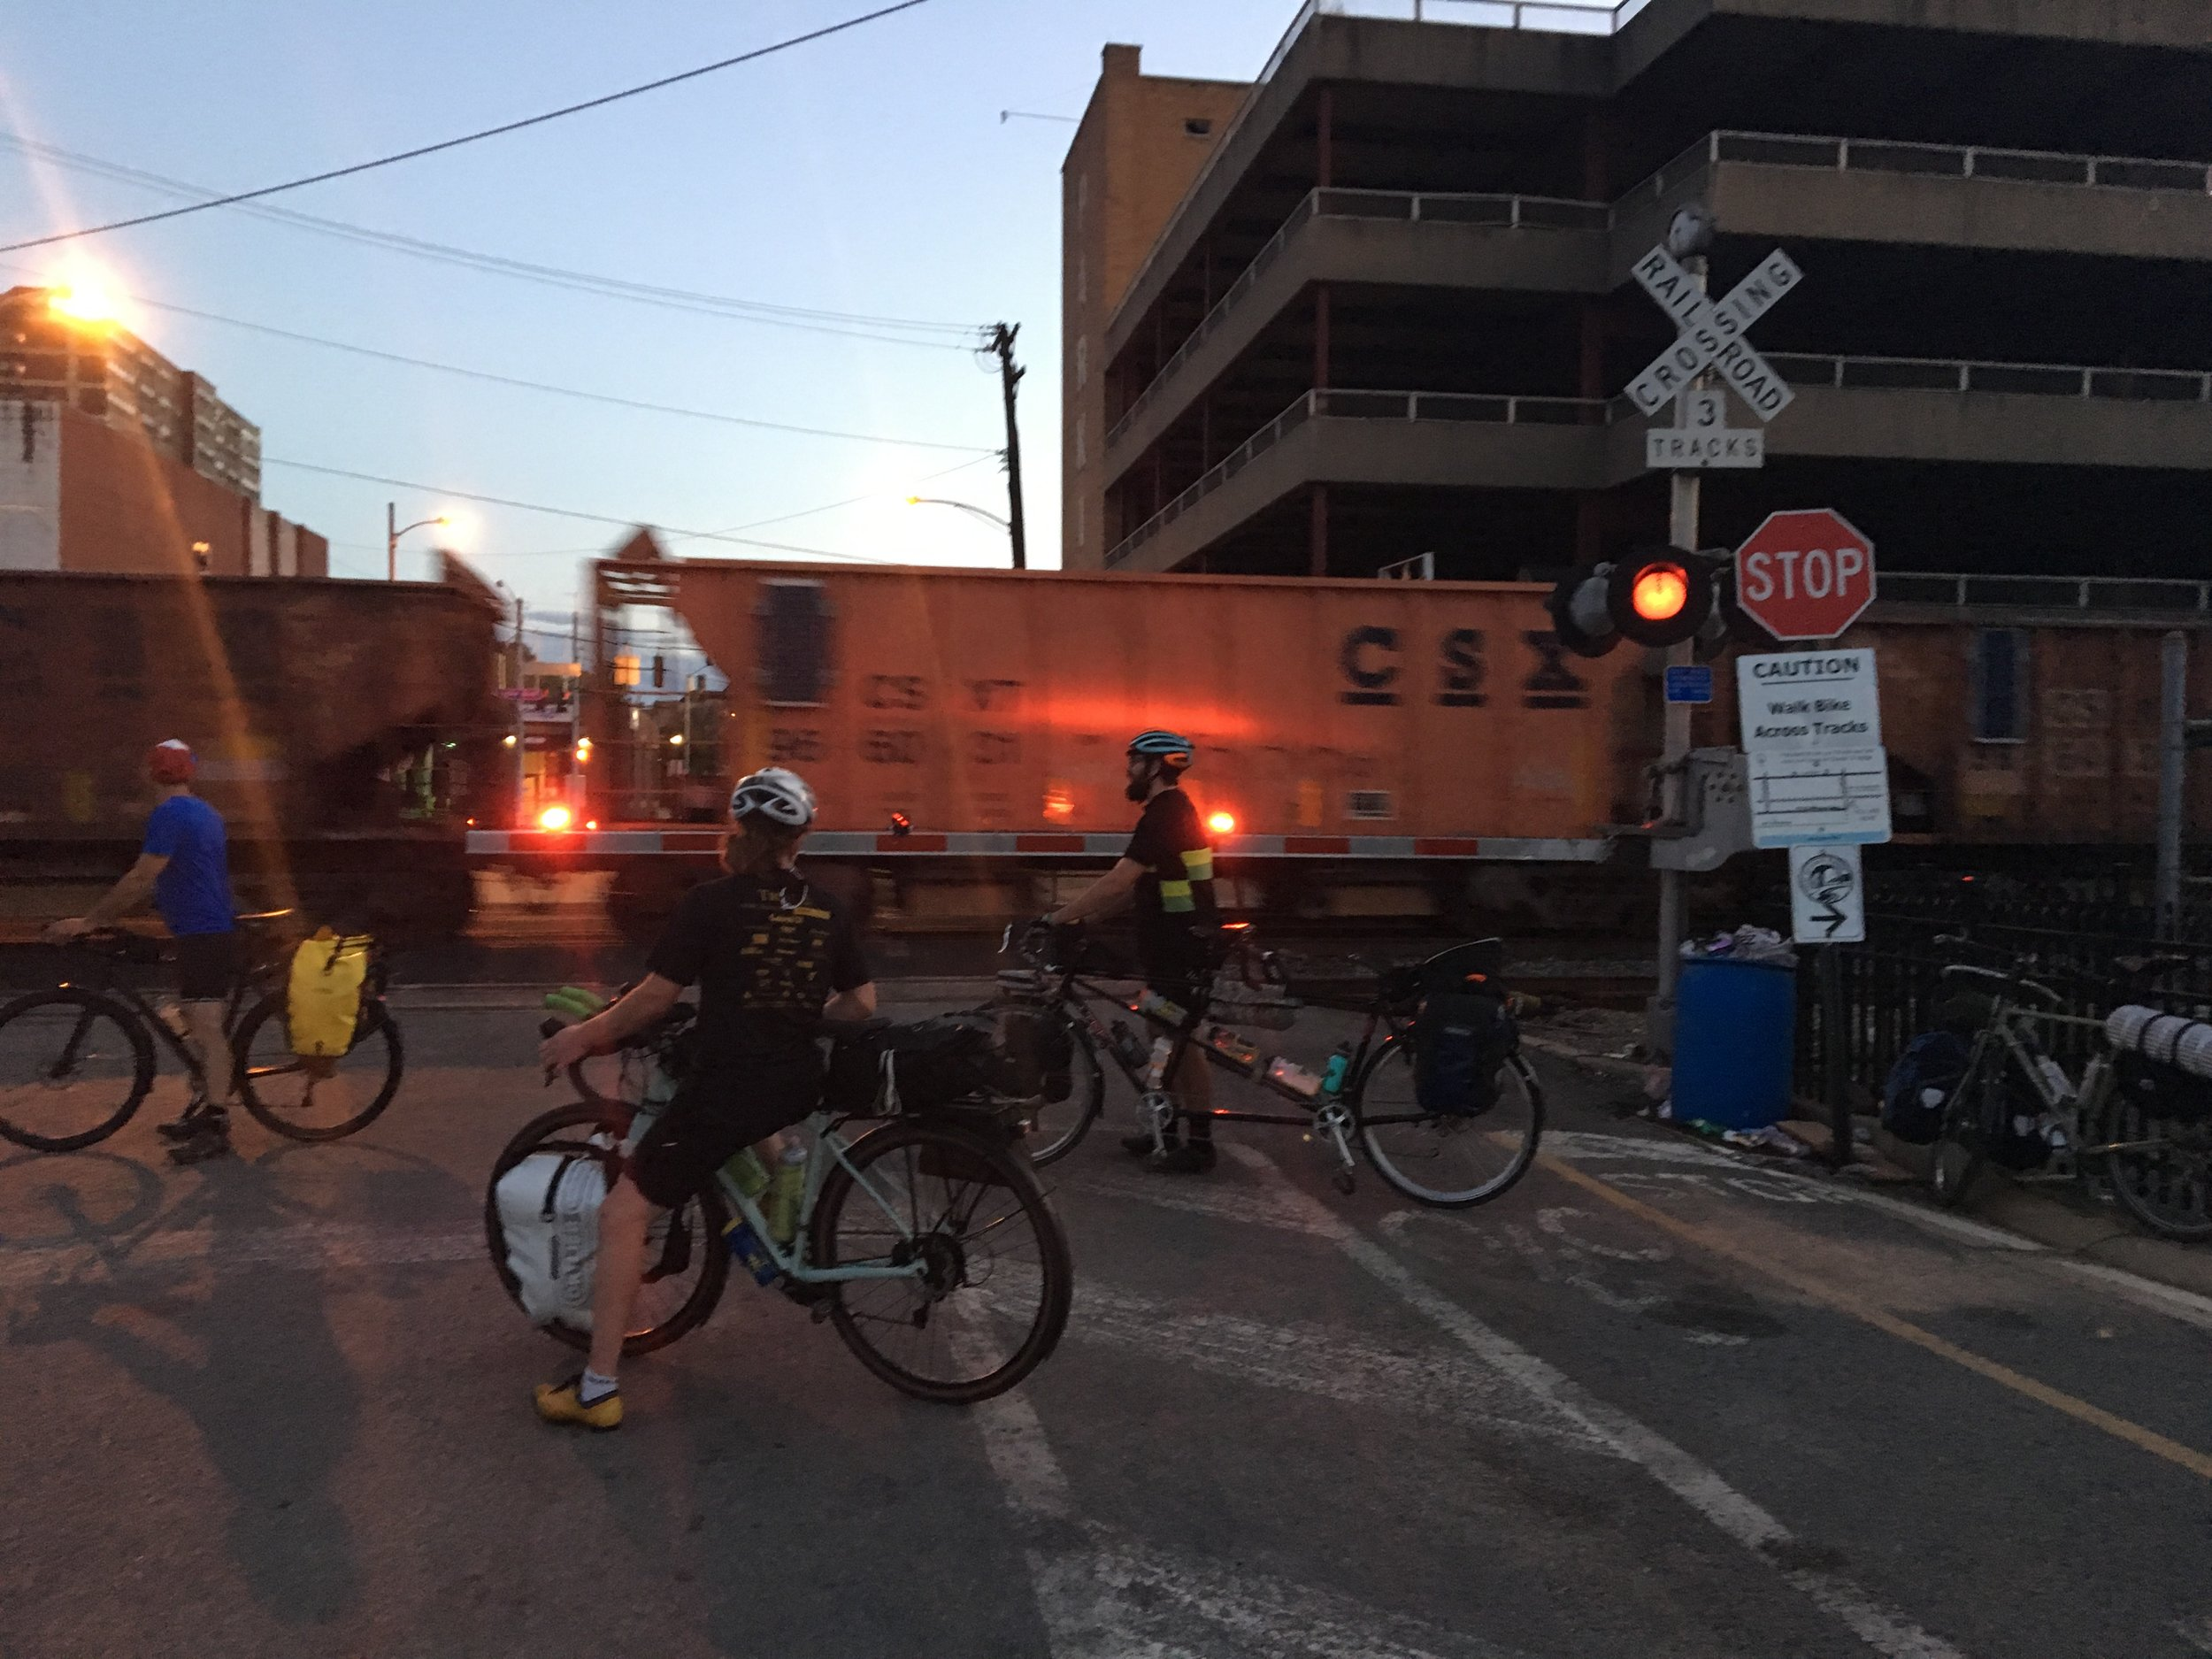 We barely got out of Pittsburgh before dark.  Here we are waiting at the train track in McKeesport, PA less than 20 miles outside of Pittsburgh.  We wanted to leave the shop by 5:30 so we could get to Connellsville and buy food and get to bed for our next big day of 120 miles of mostly climbing.